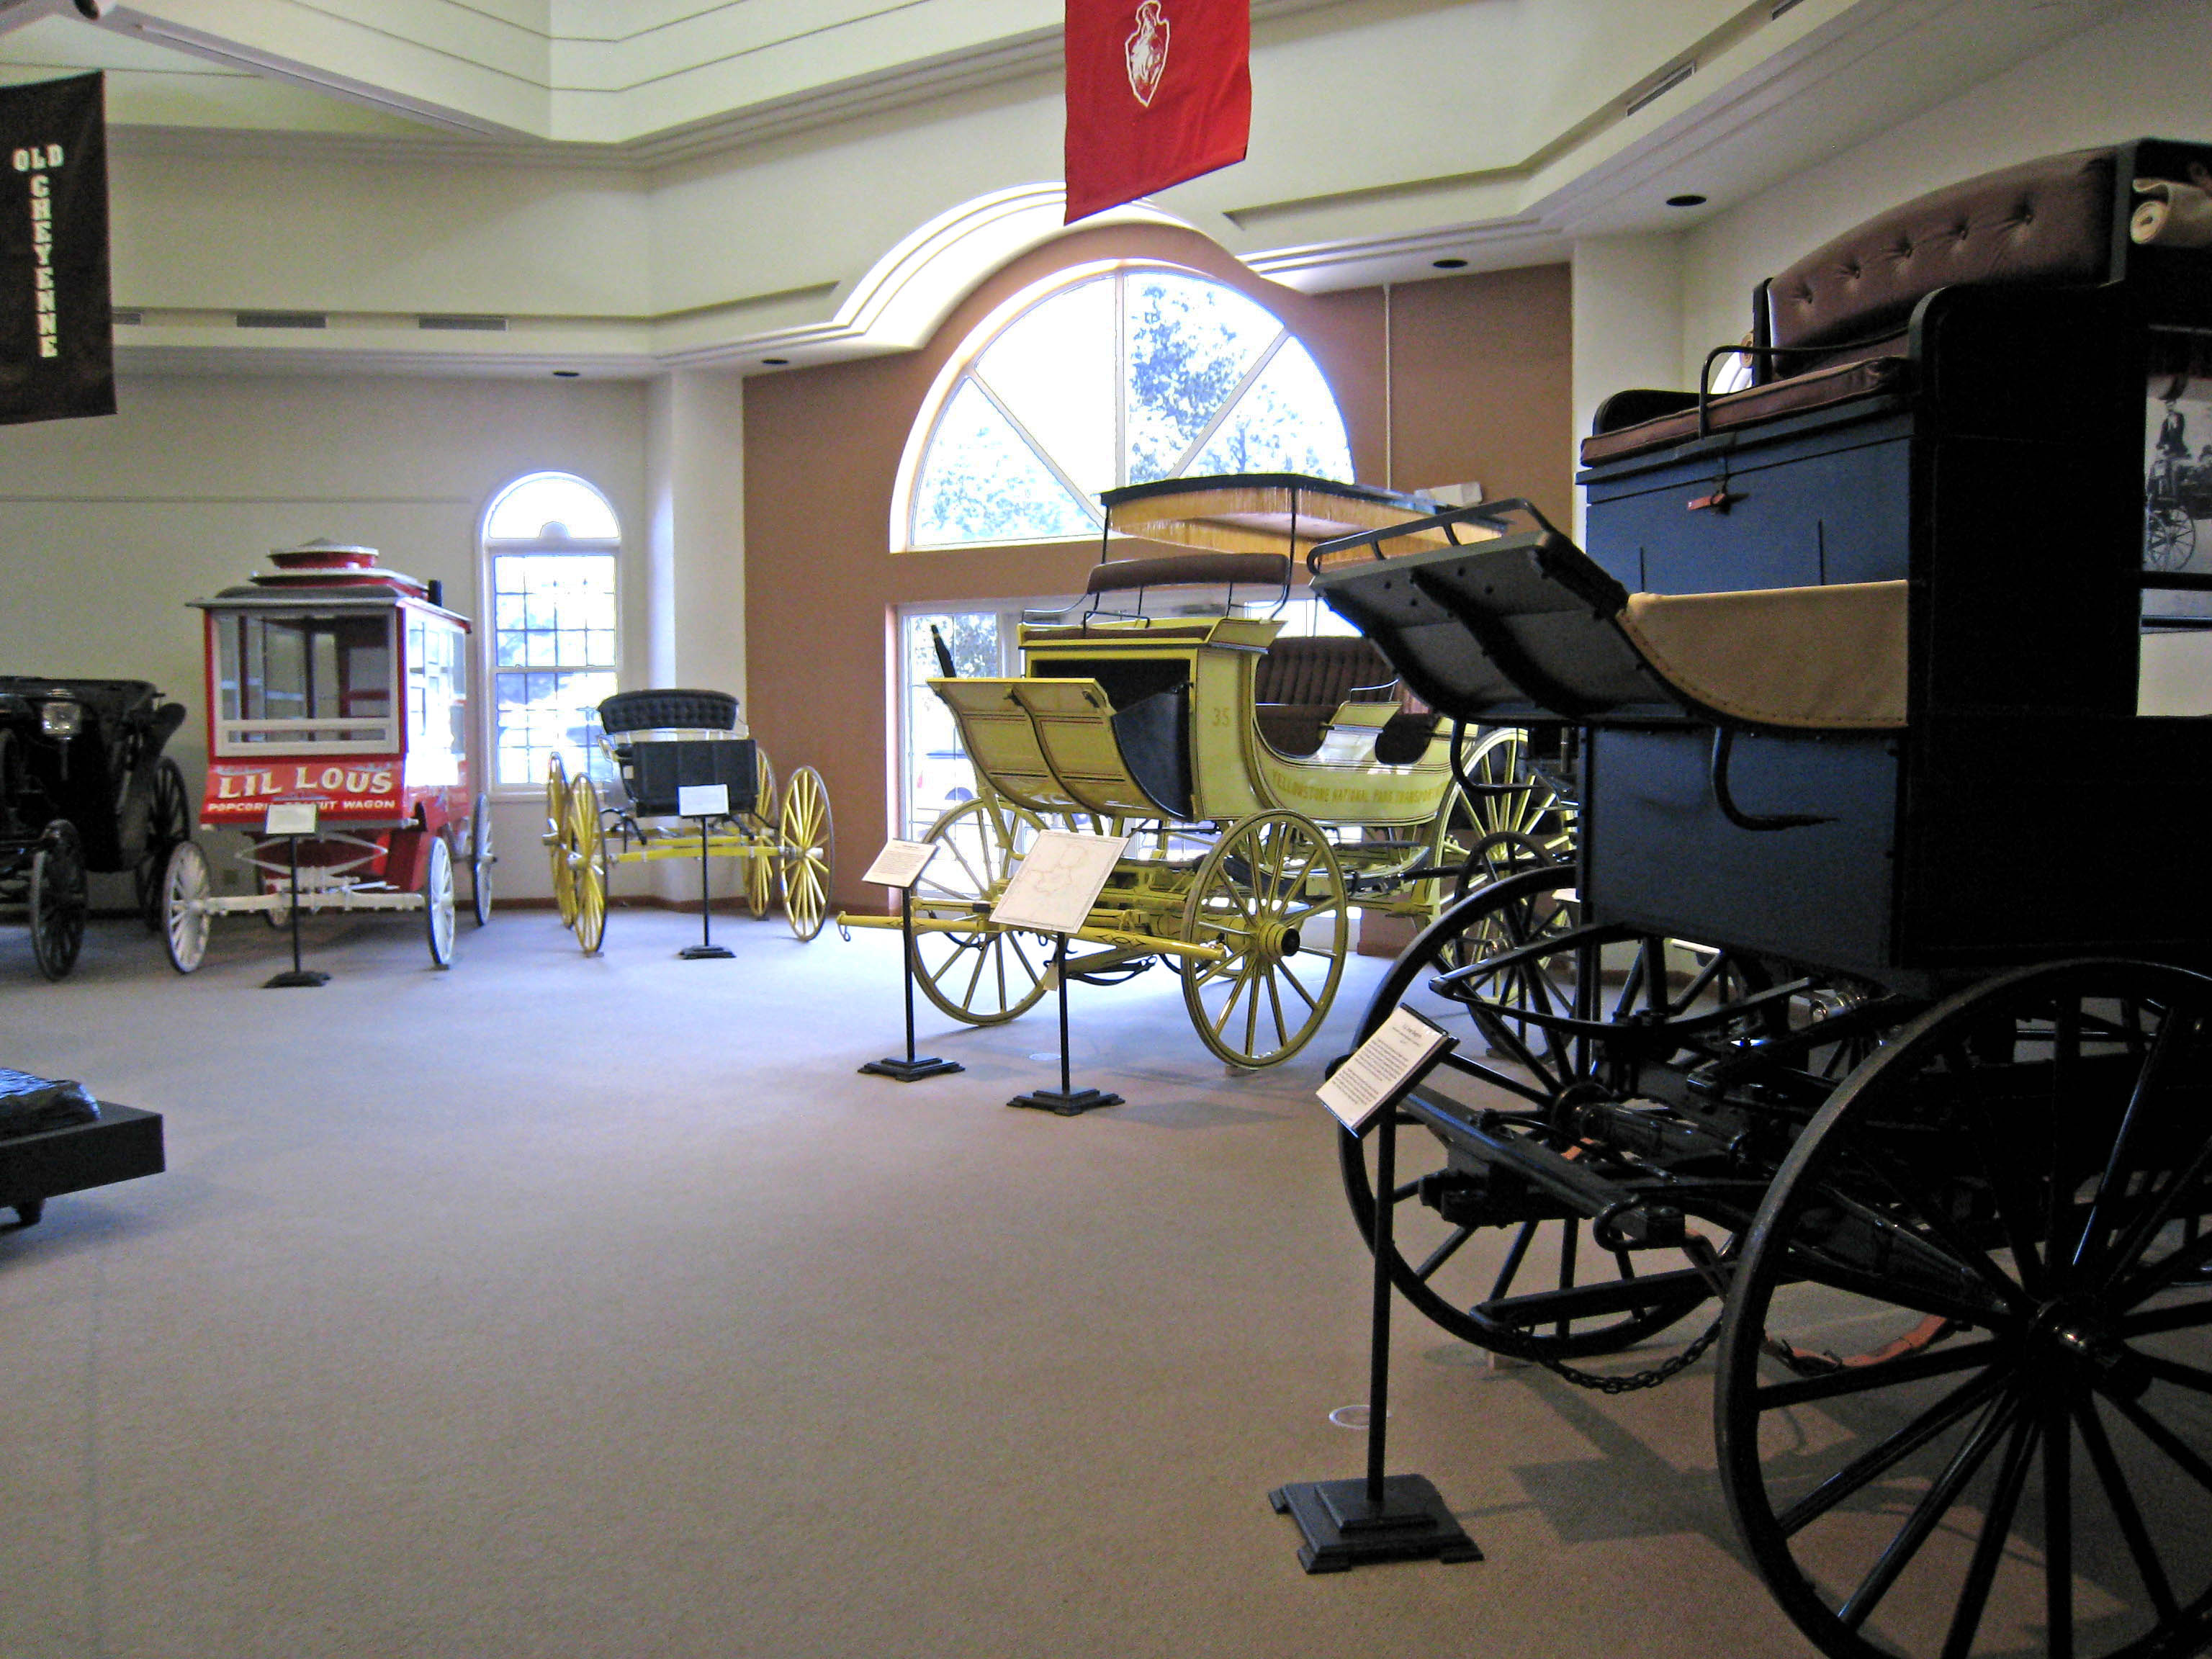 Some of the carriages housed in the museum